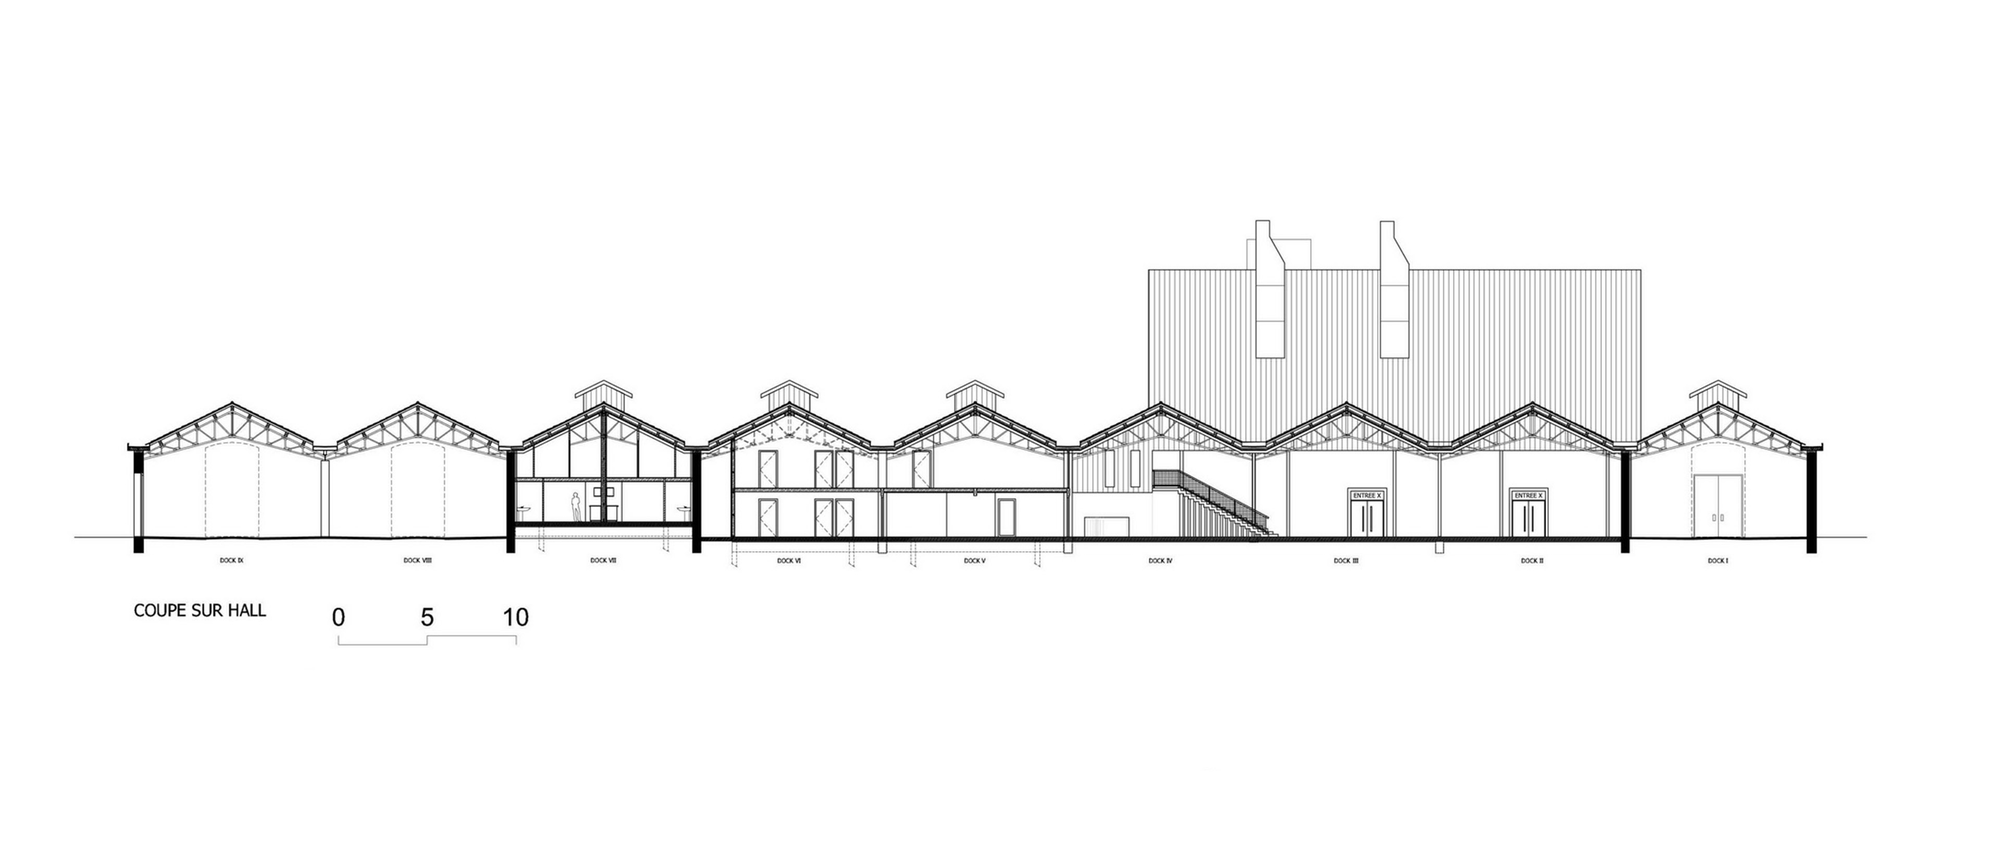 Circus_Arts_Conservatory-Adh_Architects-22.png